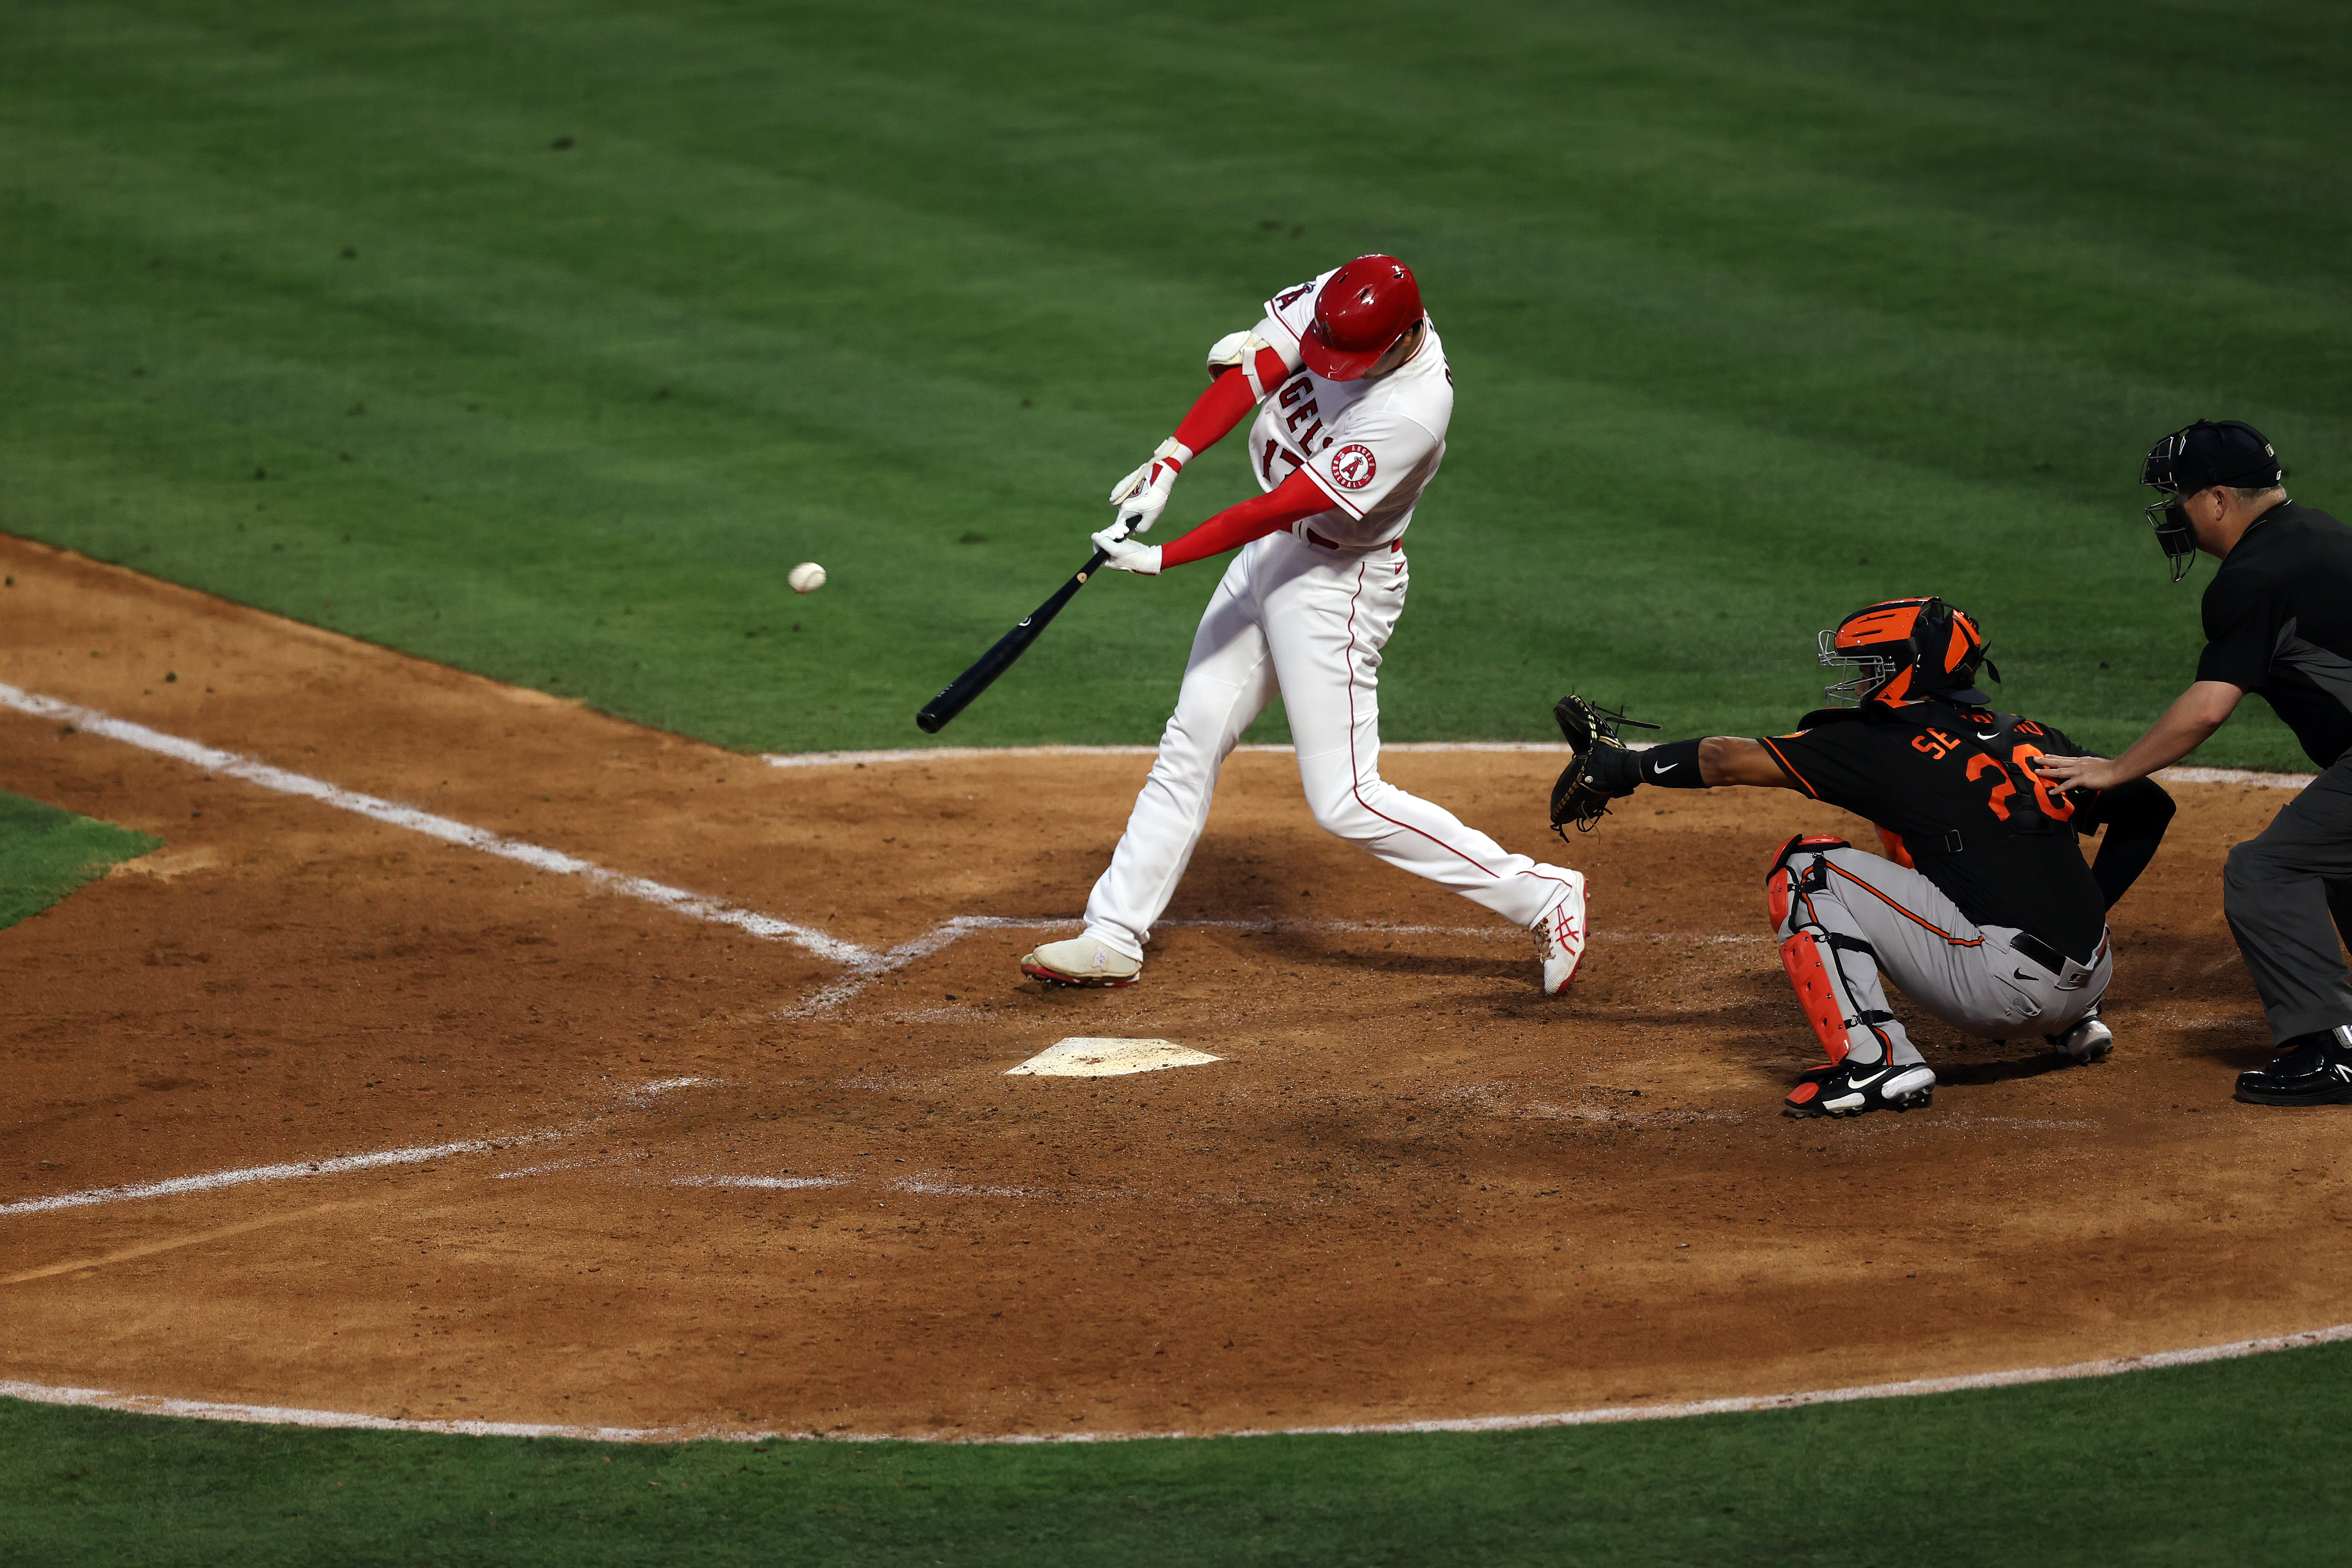 Shohei Ohtani #17 of the Los Angeles Angels hits a homerun against the Baltimore Orioles in the fourth inning at Angel Stadium of Anaheim on July 02, 2021 in Anaheim, California.